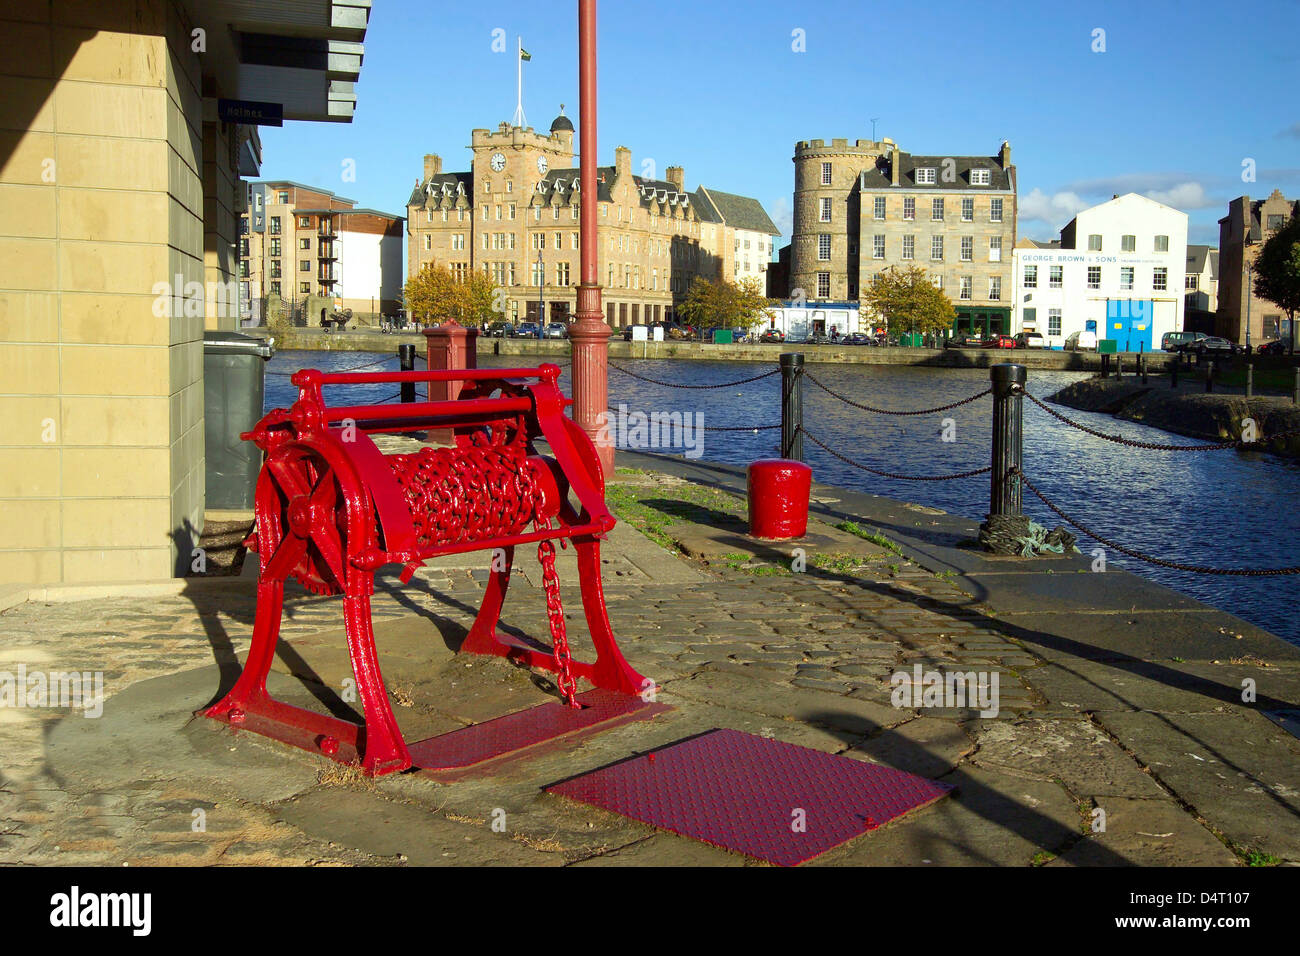 leith waterfront with red restored winch - Stock Image